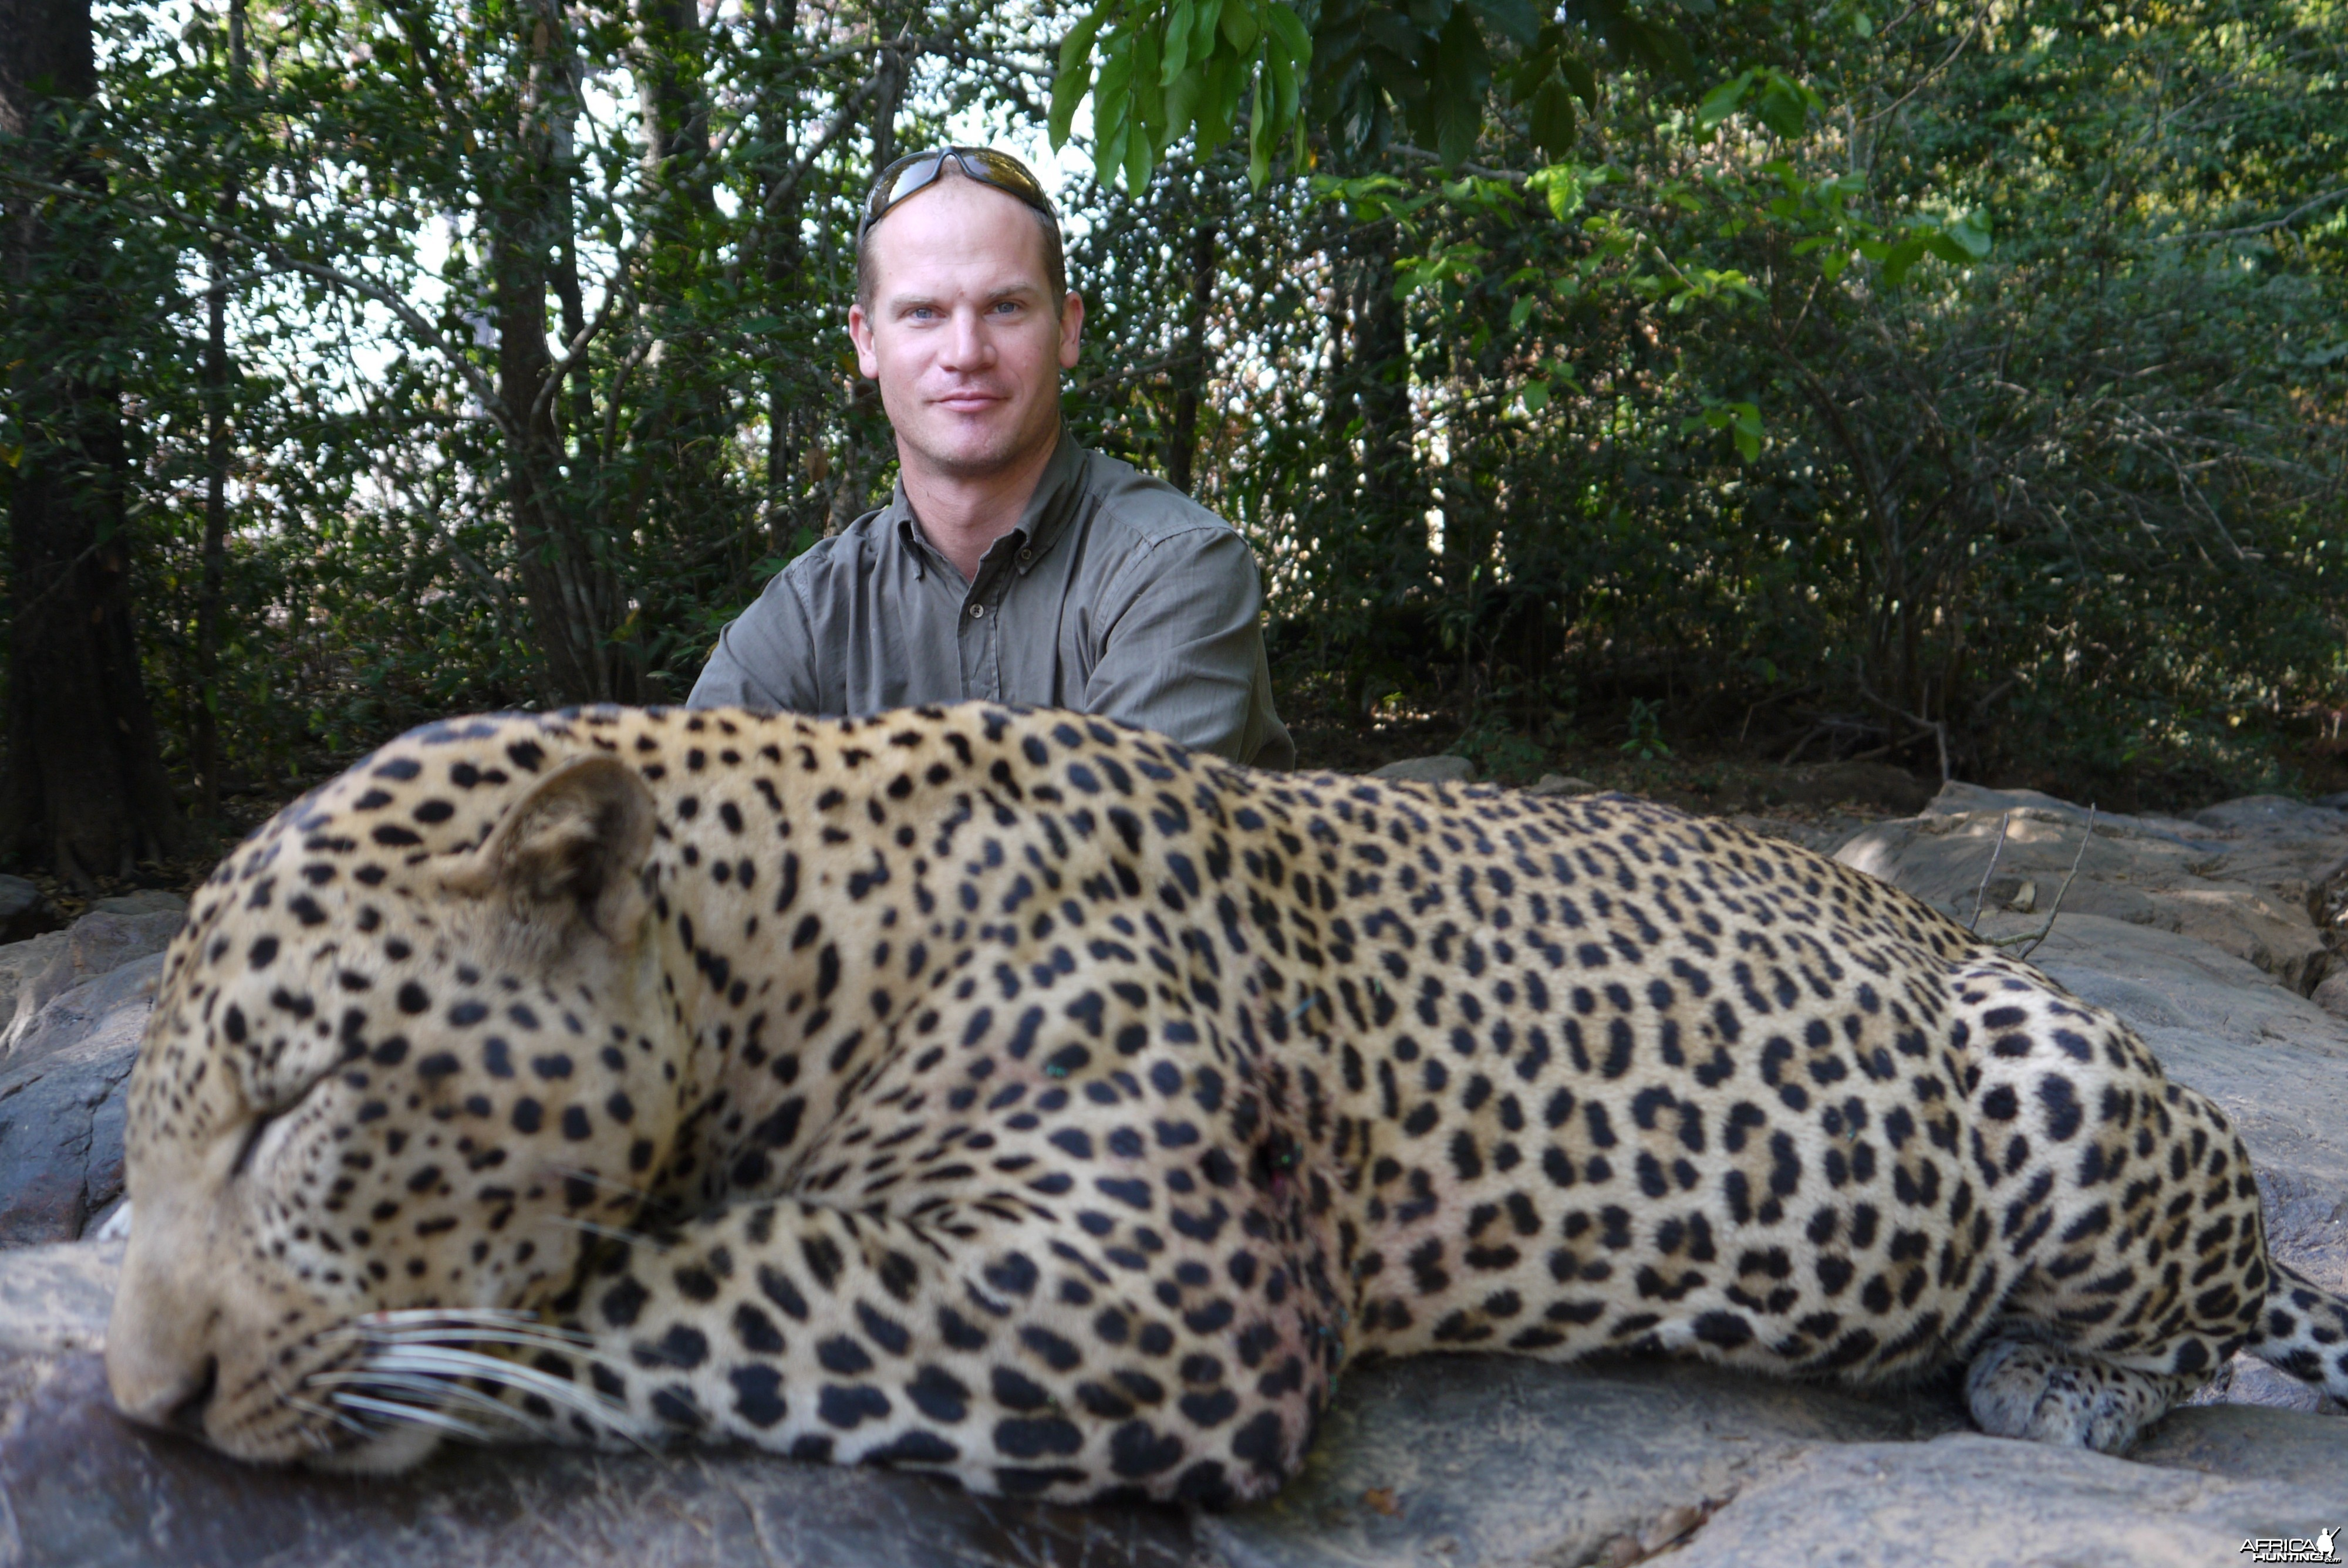 Leopard hunted in Central African Republic with CAWA